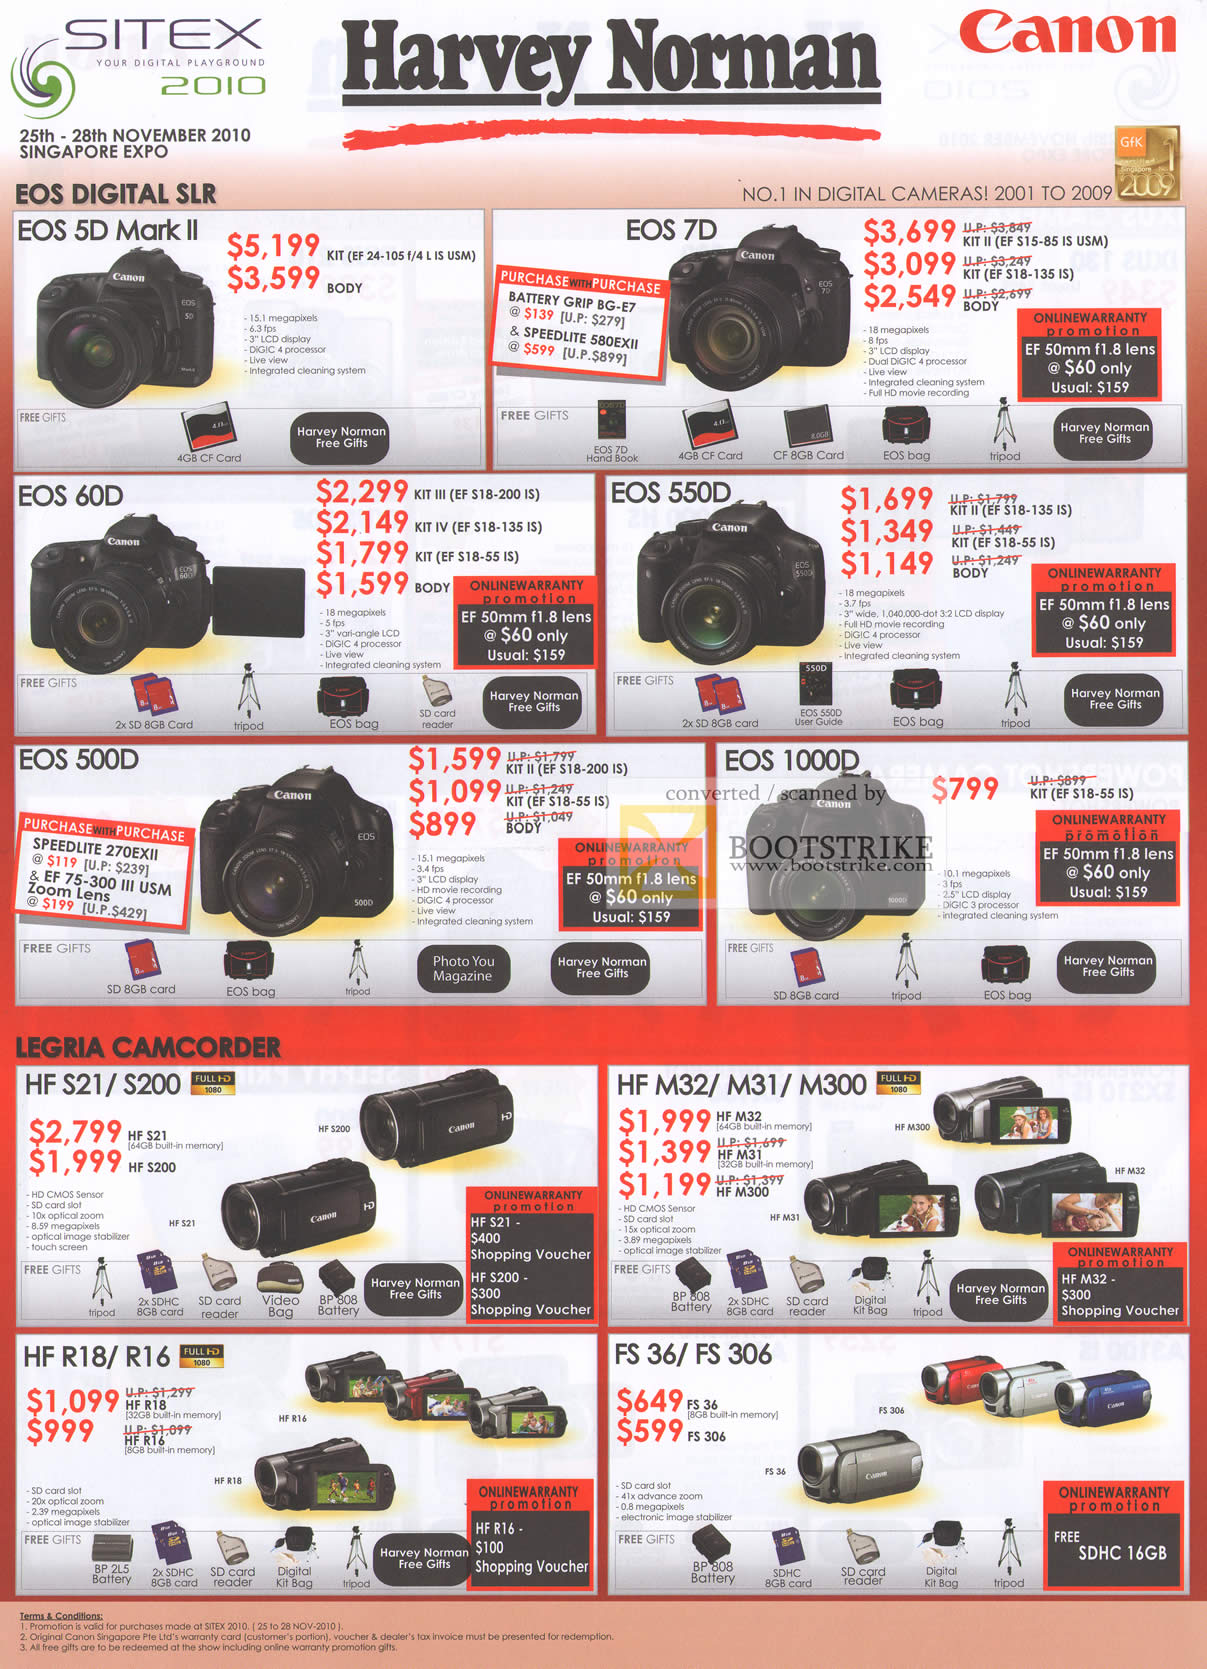 Sitex 2010 price list image brochure of Harvey Norman Canon EOS Digital Cameras DSLR 5D Mark II 7D 60D 550D 500D 1000D Legria Video Camcorder HF FS36 M32